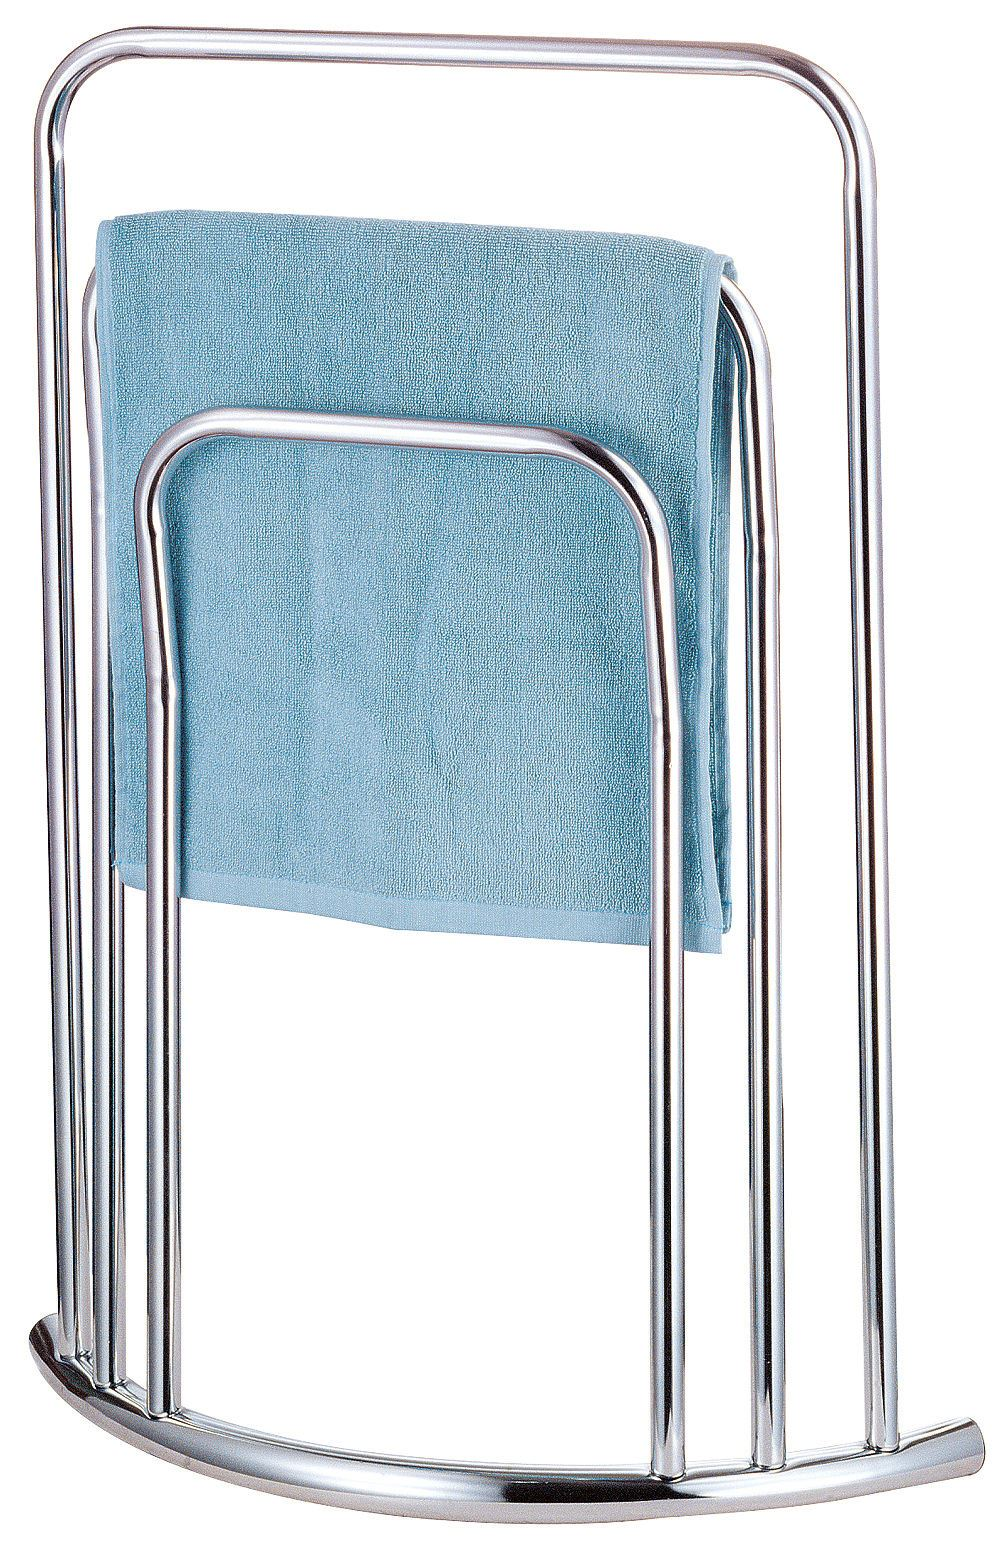 details about free standing curved 3 tier towel rail drying bathroom stand holder storage rack